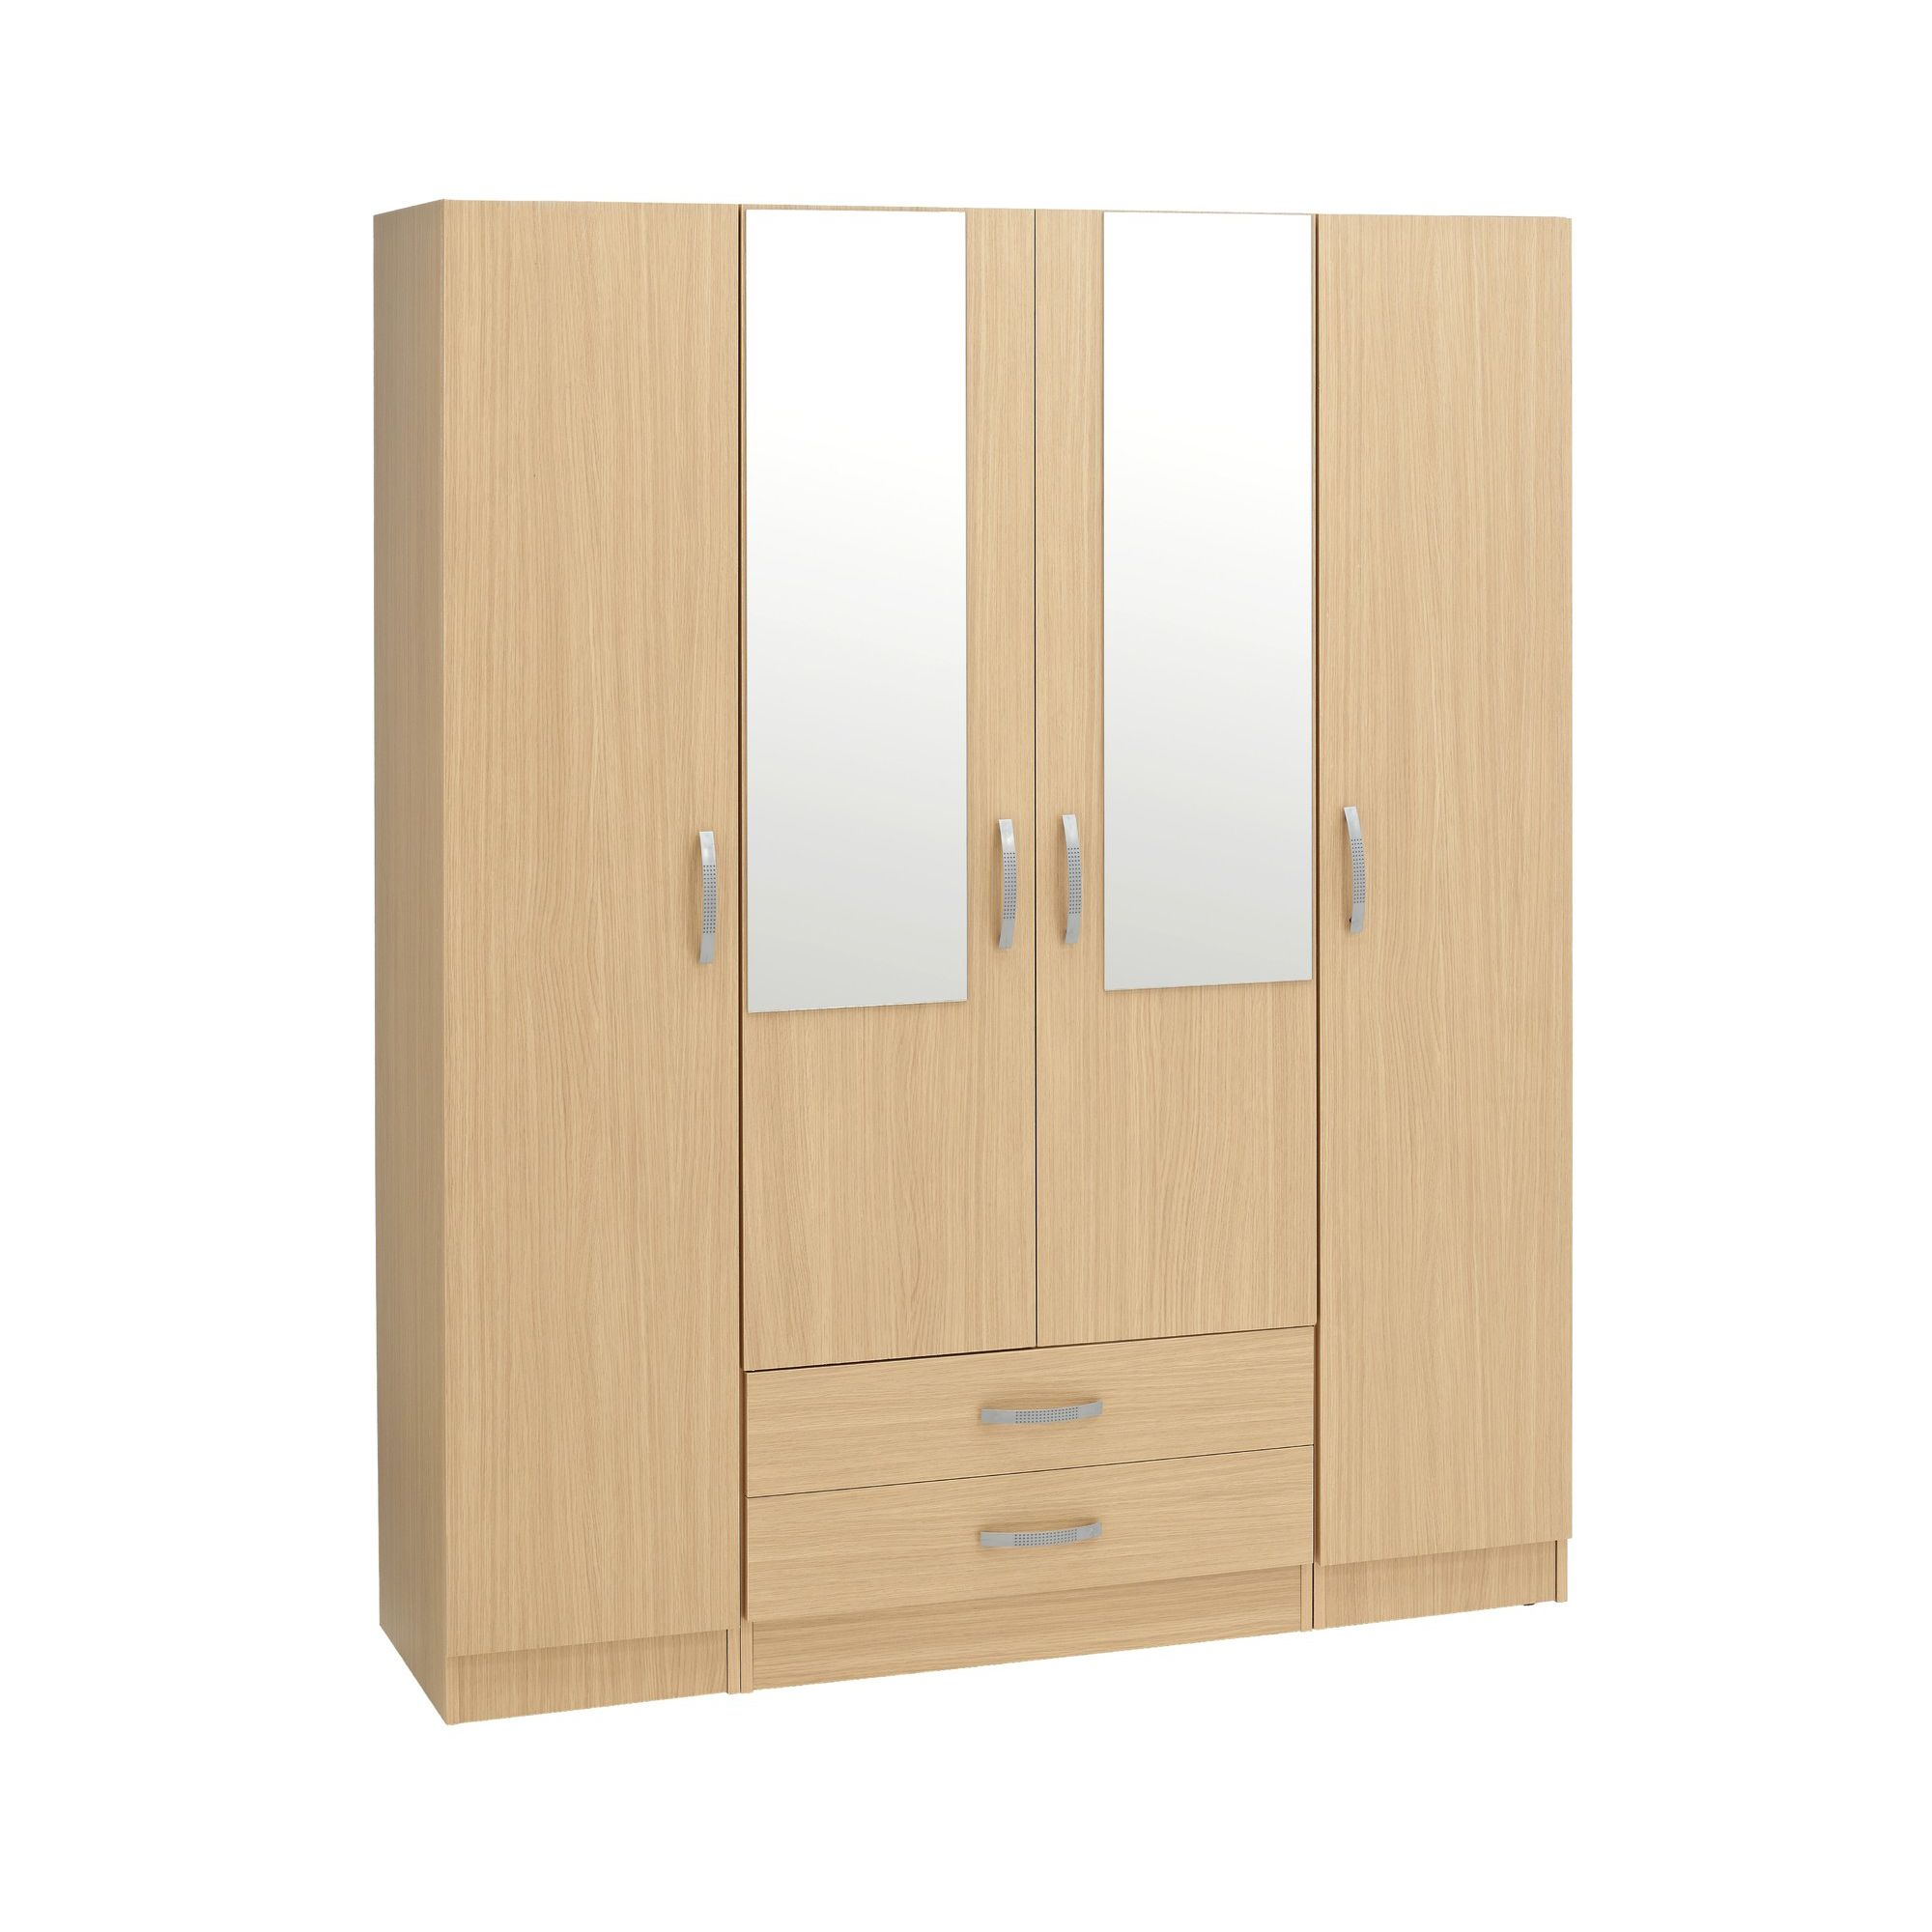 Ideal Furniture Budapest 2 Mirrors Wardrobe - Walnut at Tesco Direct